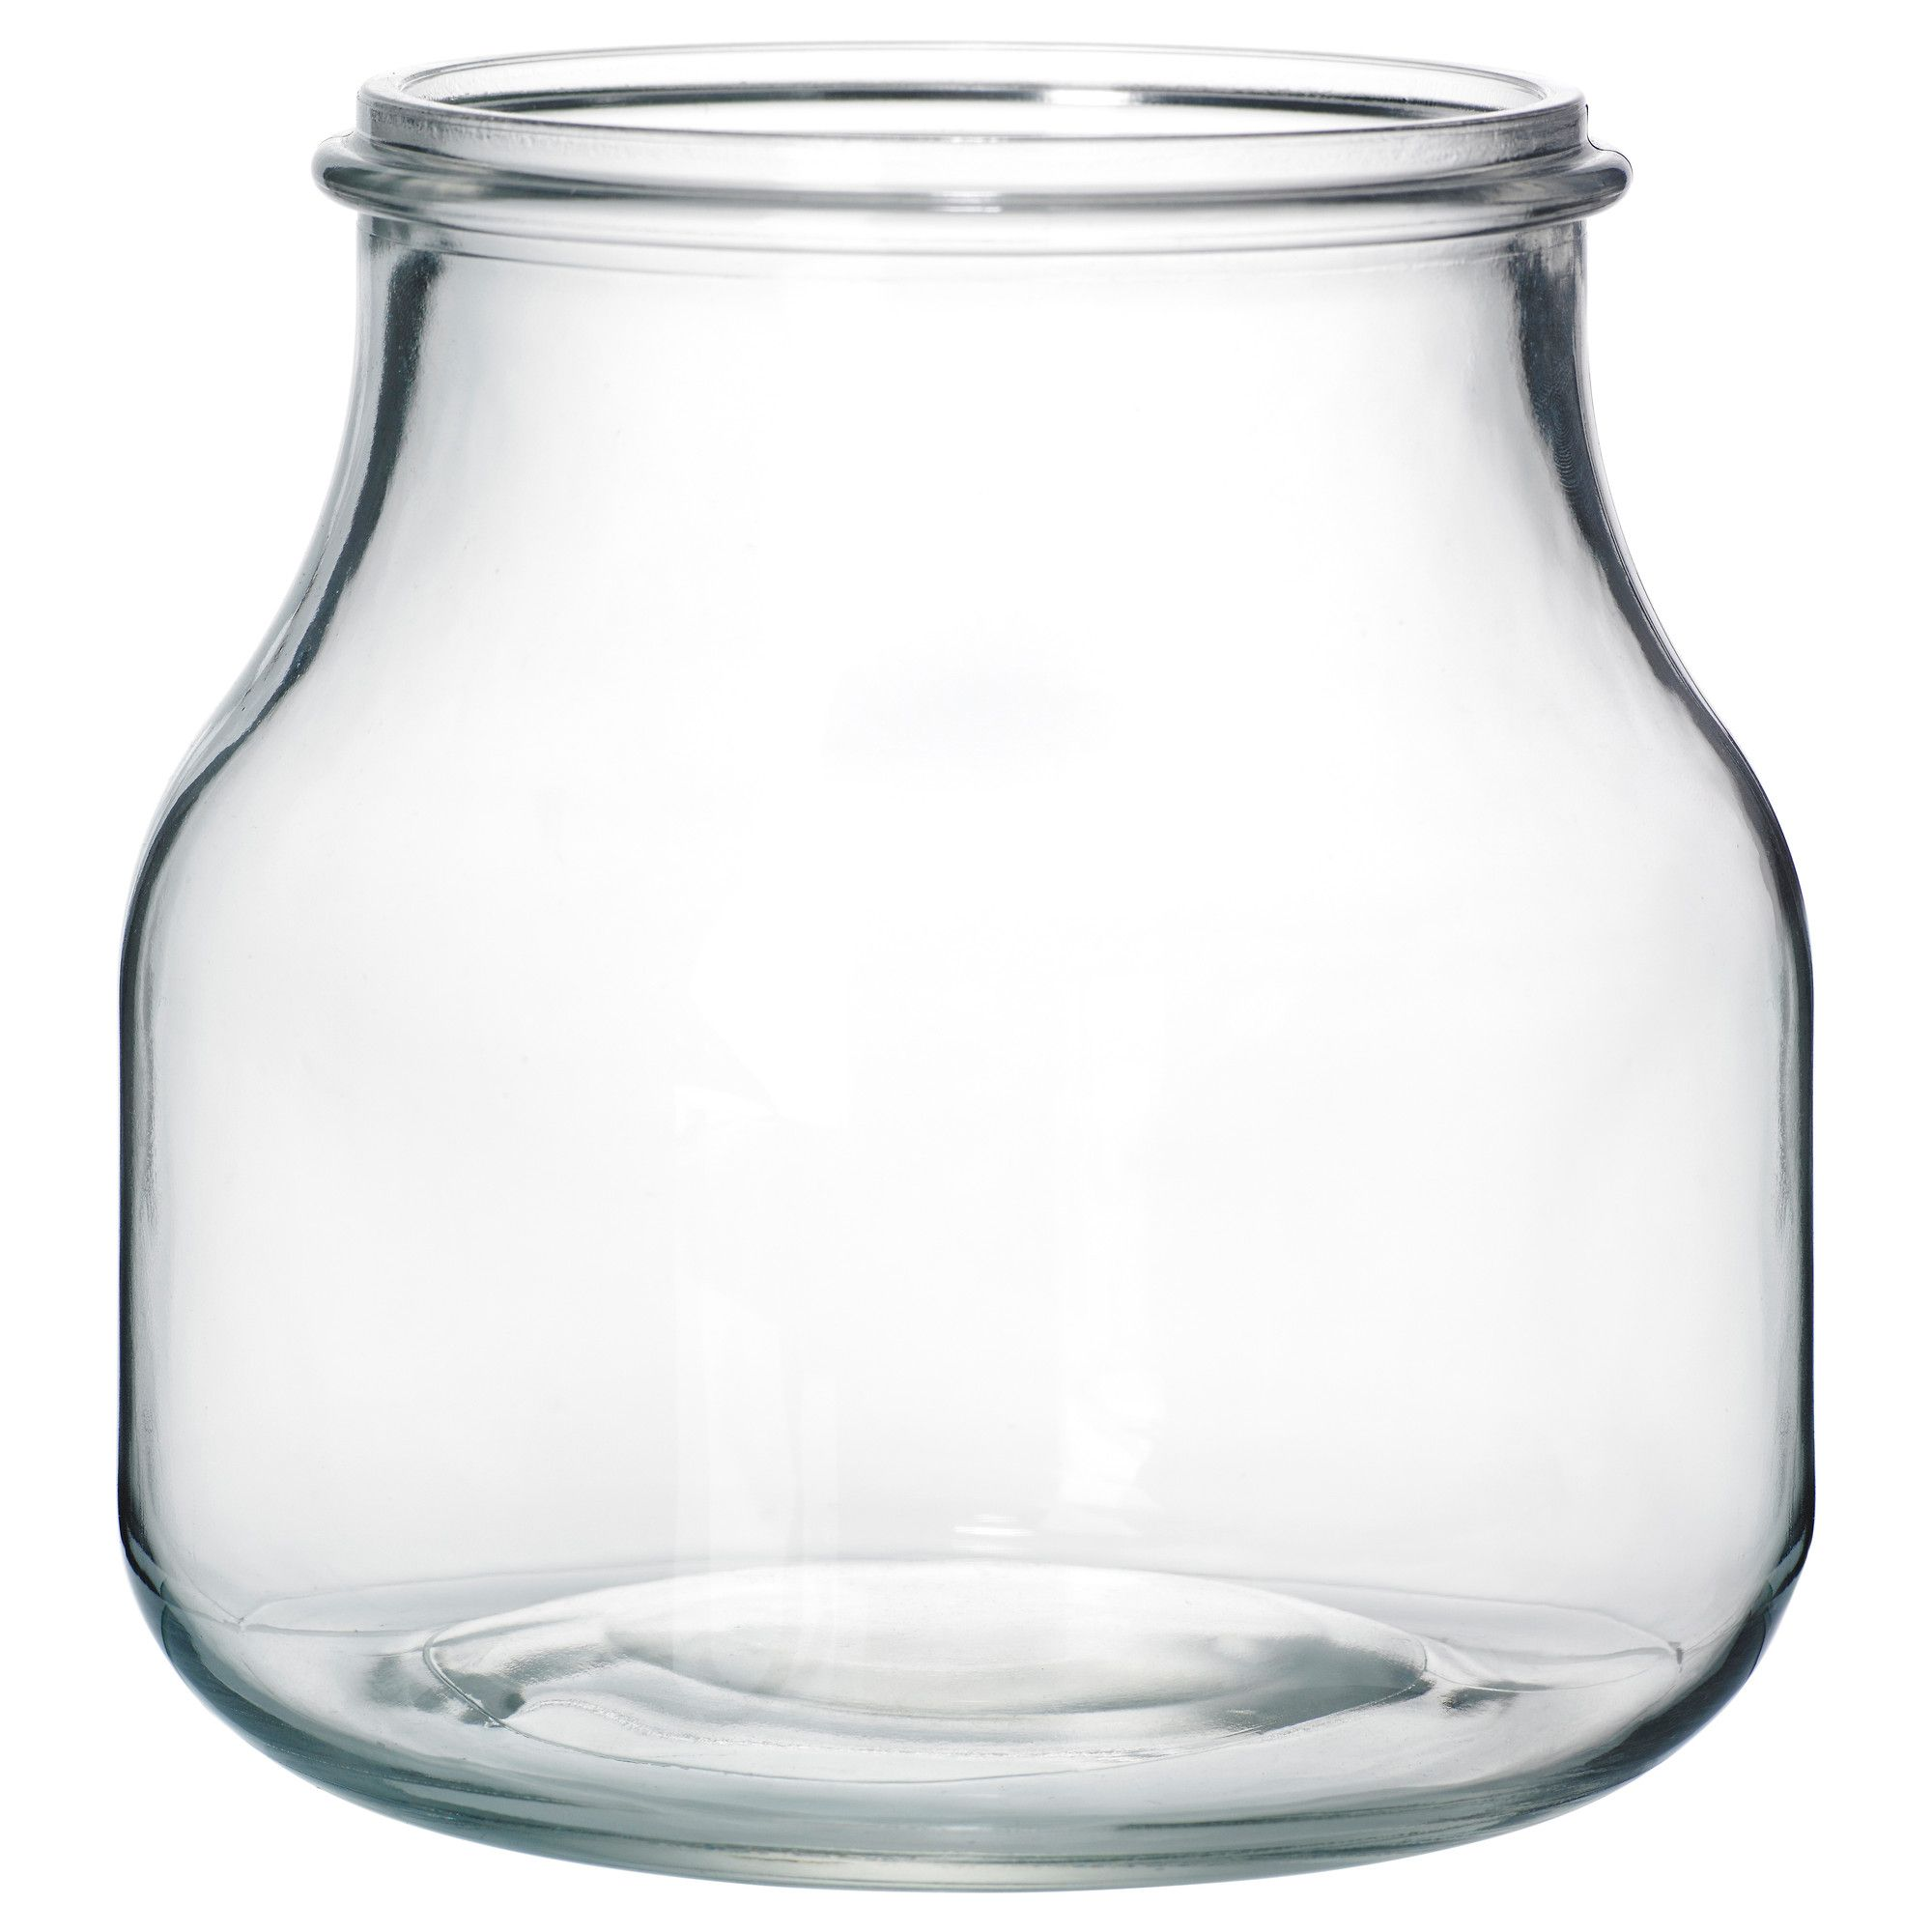 Ensidig Vase Ikea All Sorts Of Shapes And Sizes For Wedding Centrepieces